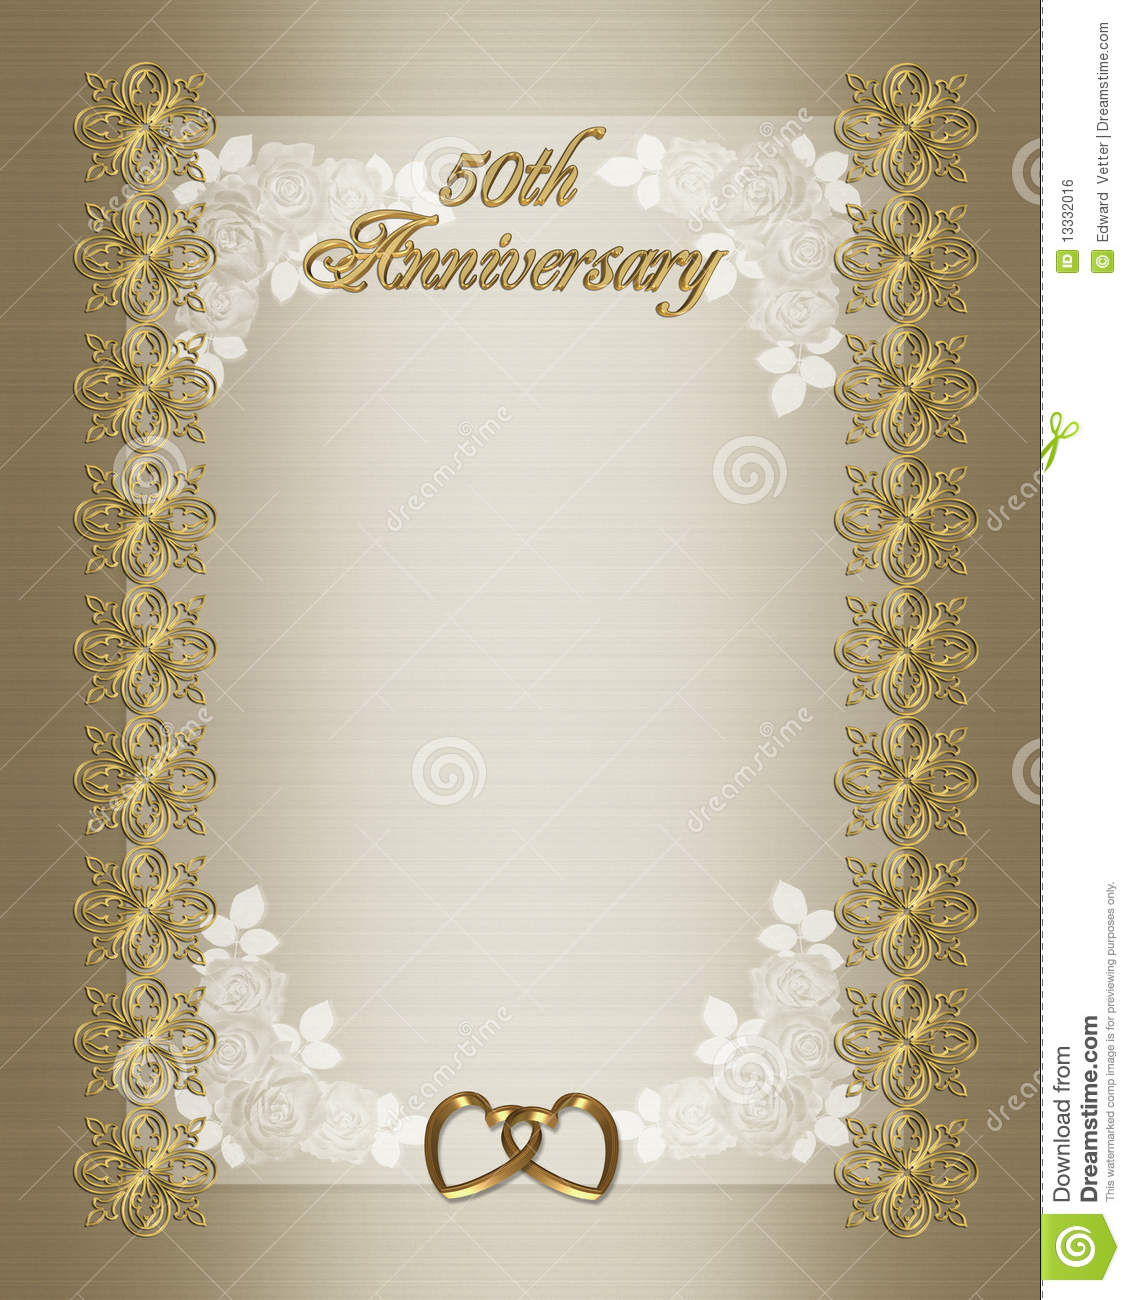 50th wedding anniversary invitation template stock illustration